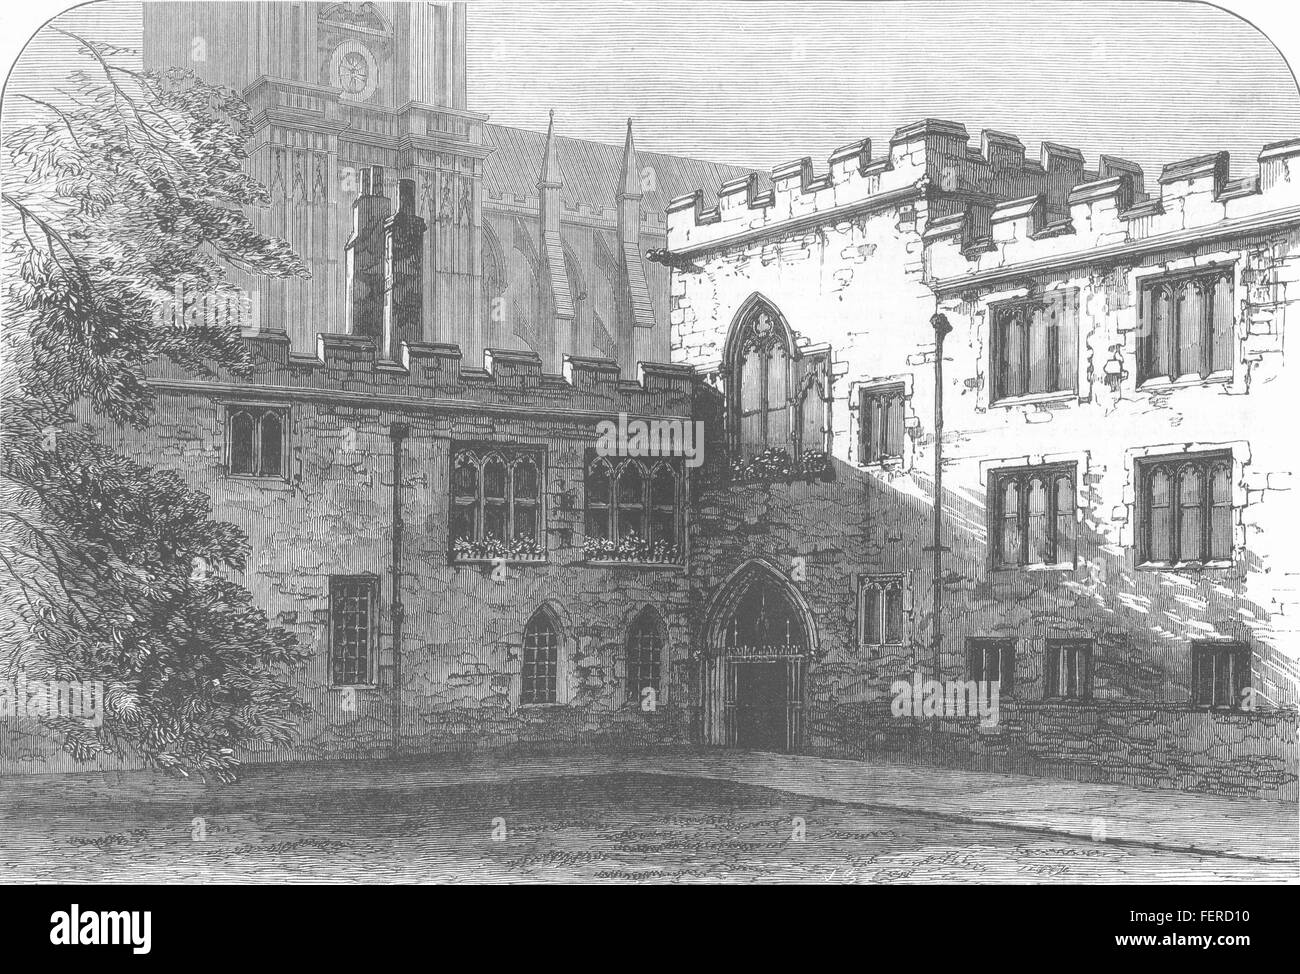 WESTMINSTER The Deanery, Dean's-Yard 1881. Illustrated London News - Stock Image